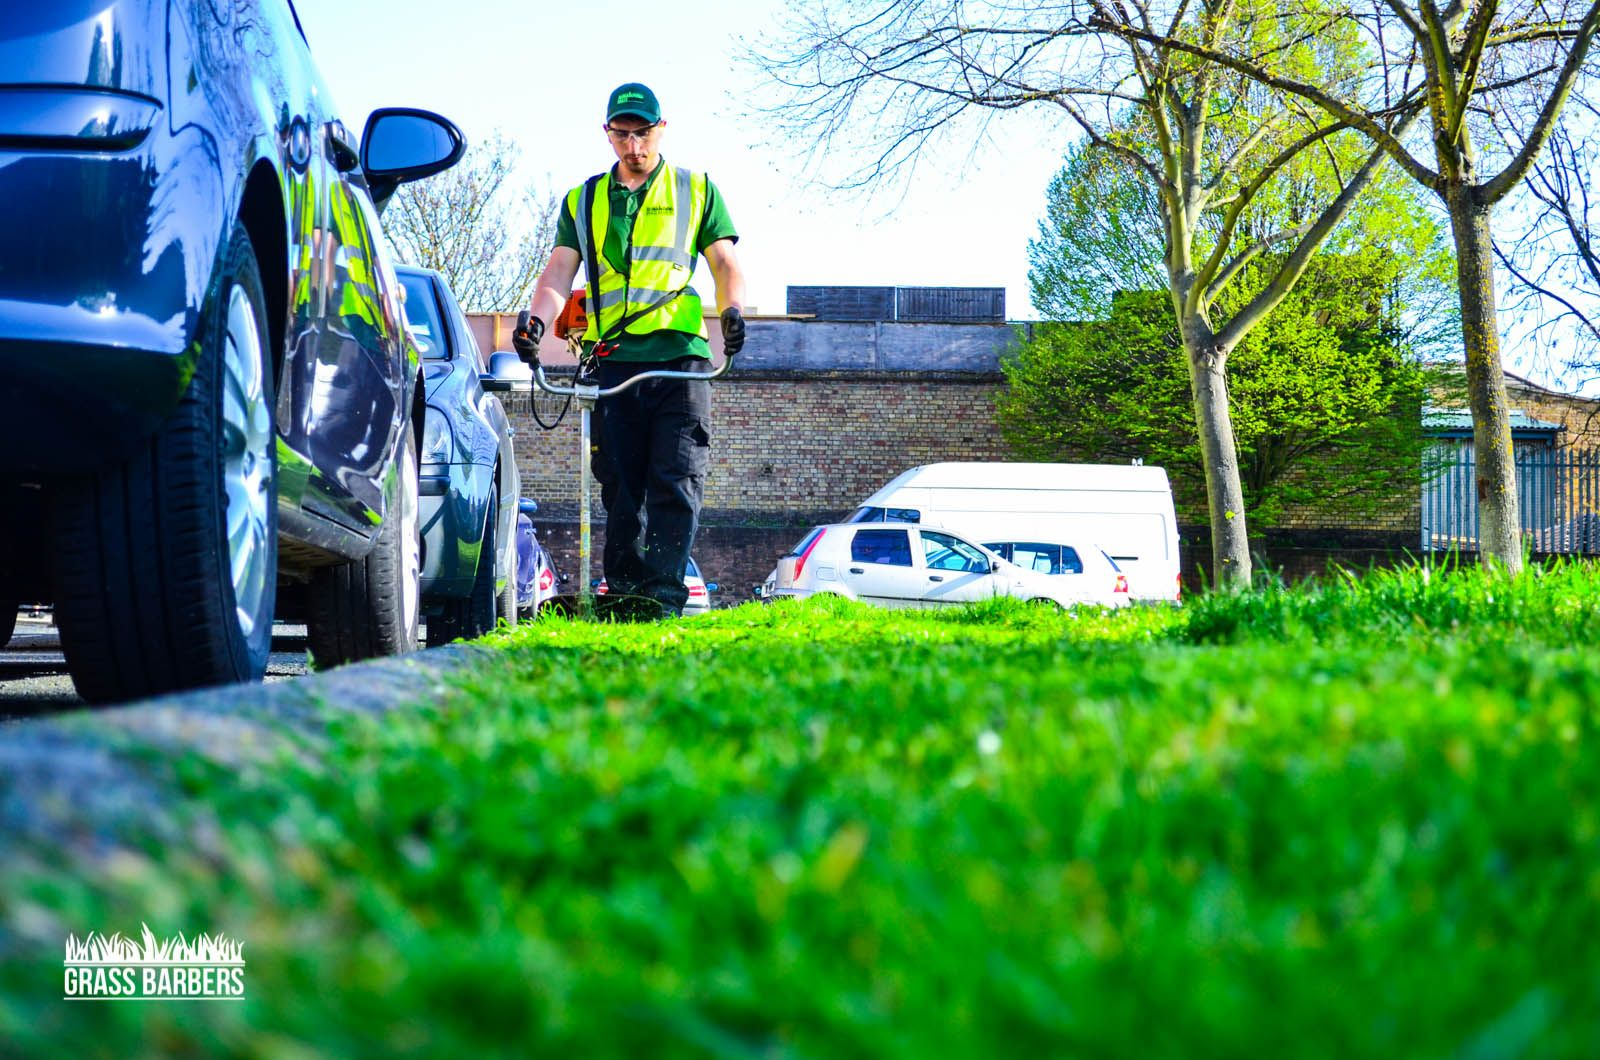 Over the years, we have partnered with our clients to provide quality horticultural and landscape management services in a reliable and cost-effective manner. www.grassbarbers.co.uk